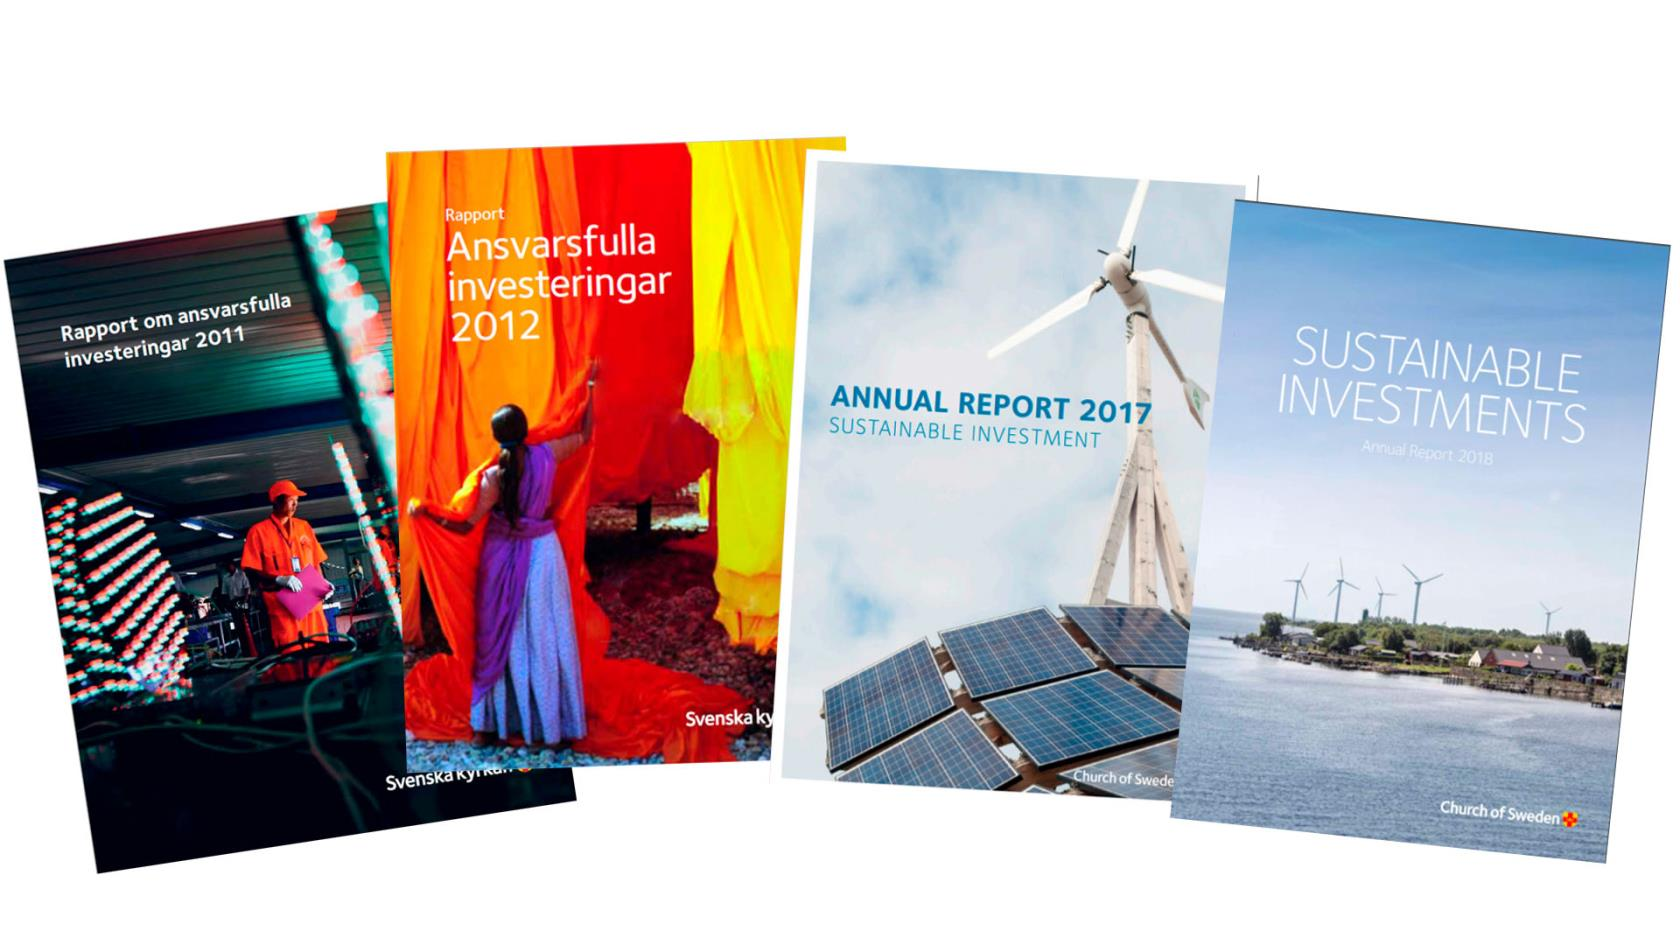 Four copies of annual reports about sustainable investments.